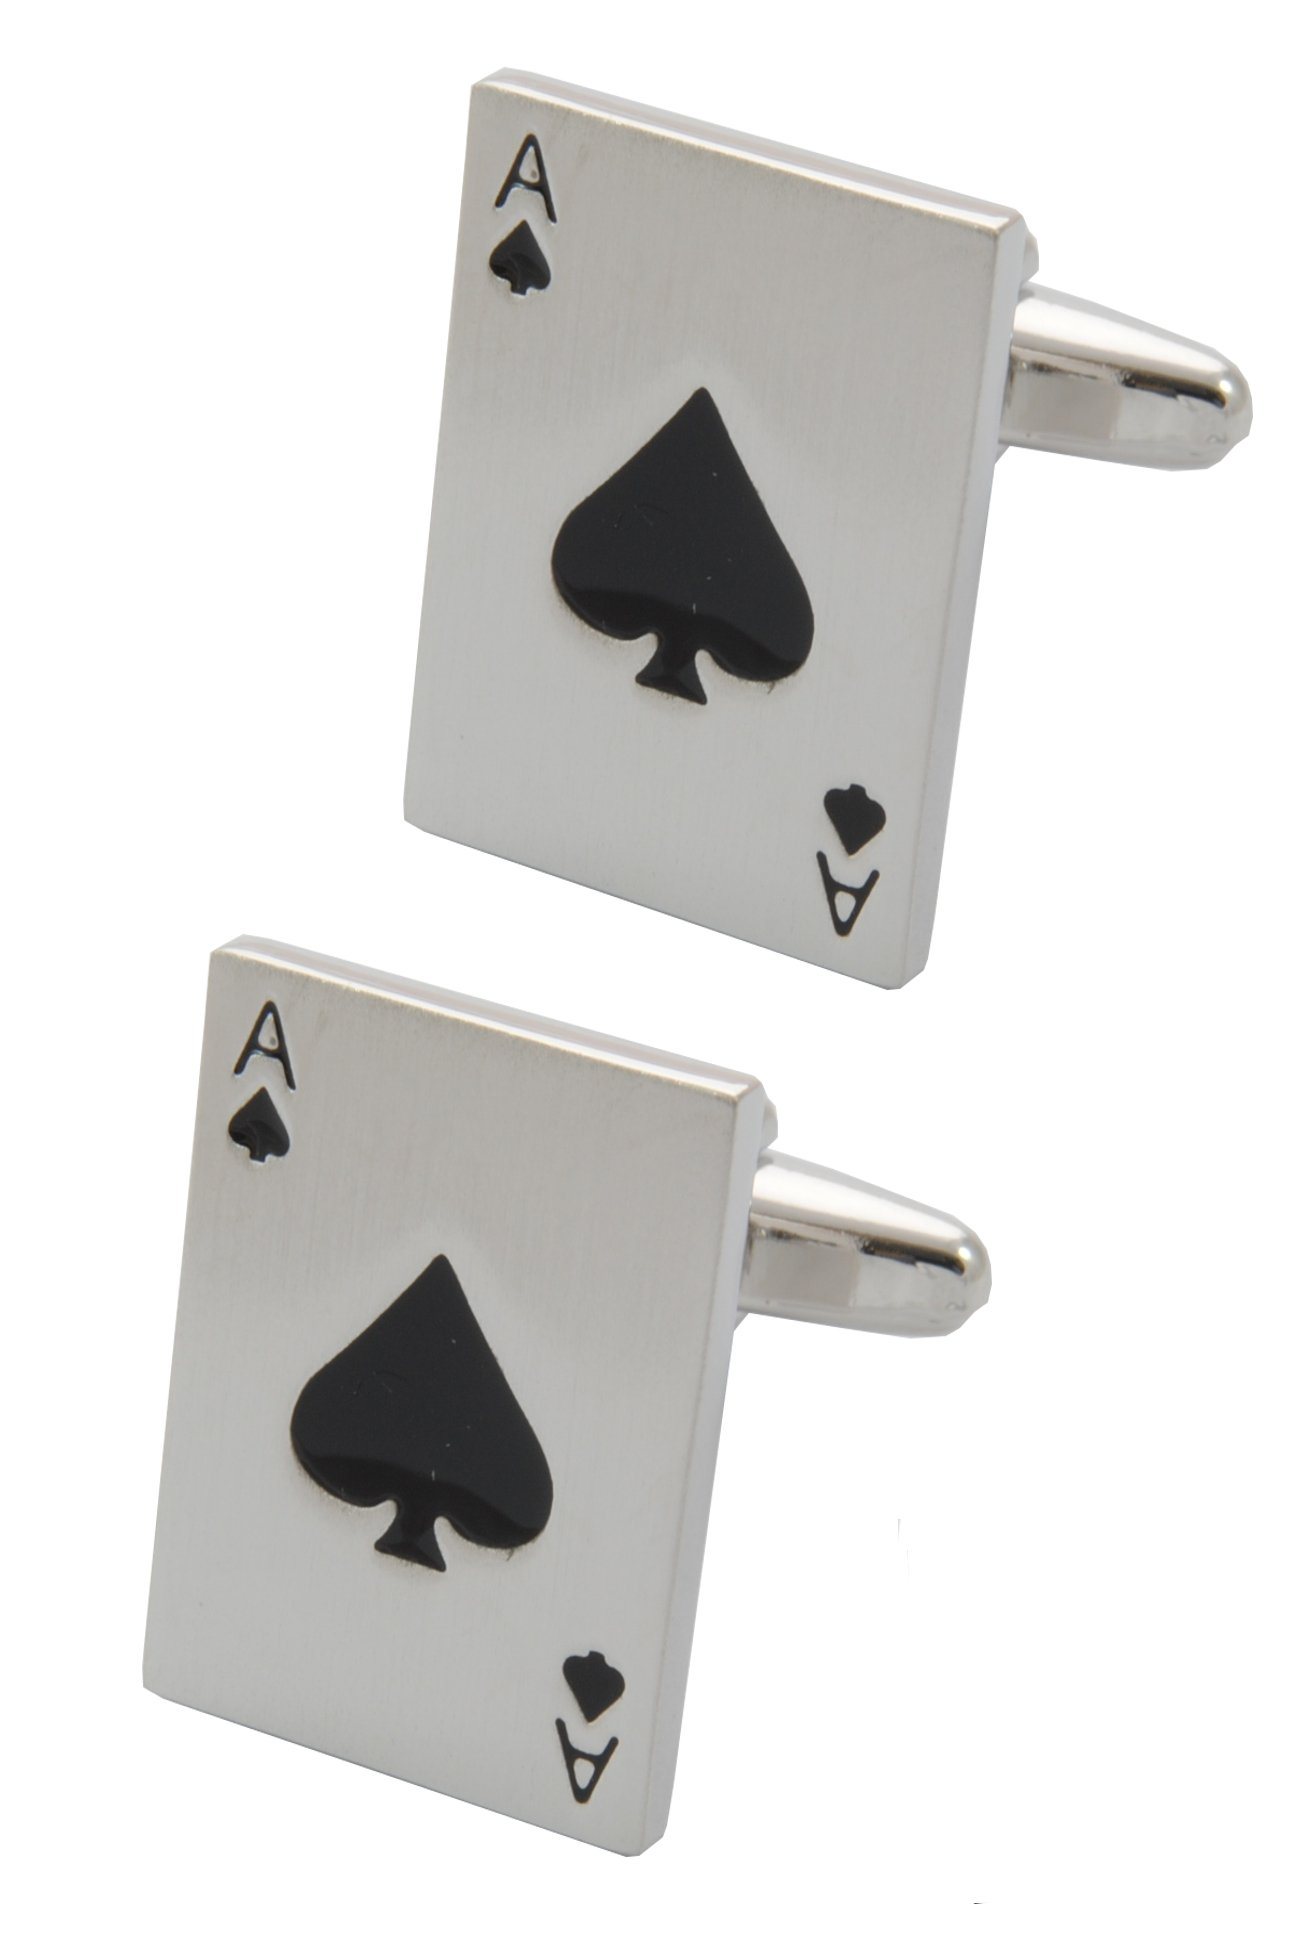 COLLAR AND CUFFS LONDON - Premium Cufflinks with Gift Box - Ace of Spades - Pack of Cards - Poker Magic Magician Game - Silver Colour